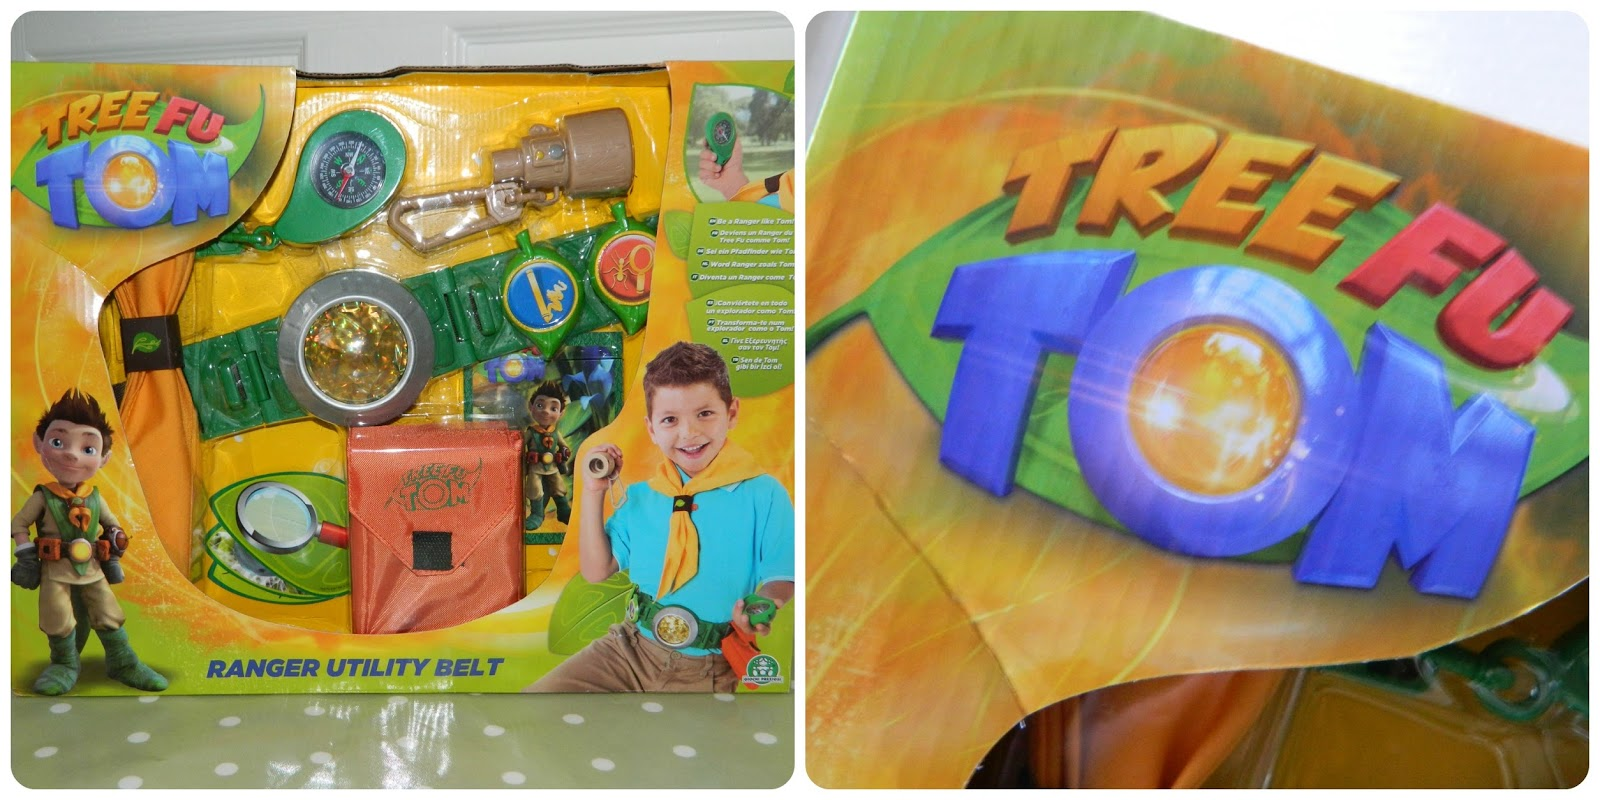 Tree Fu Tom Ranger Utility Belt